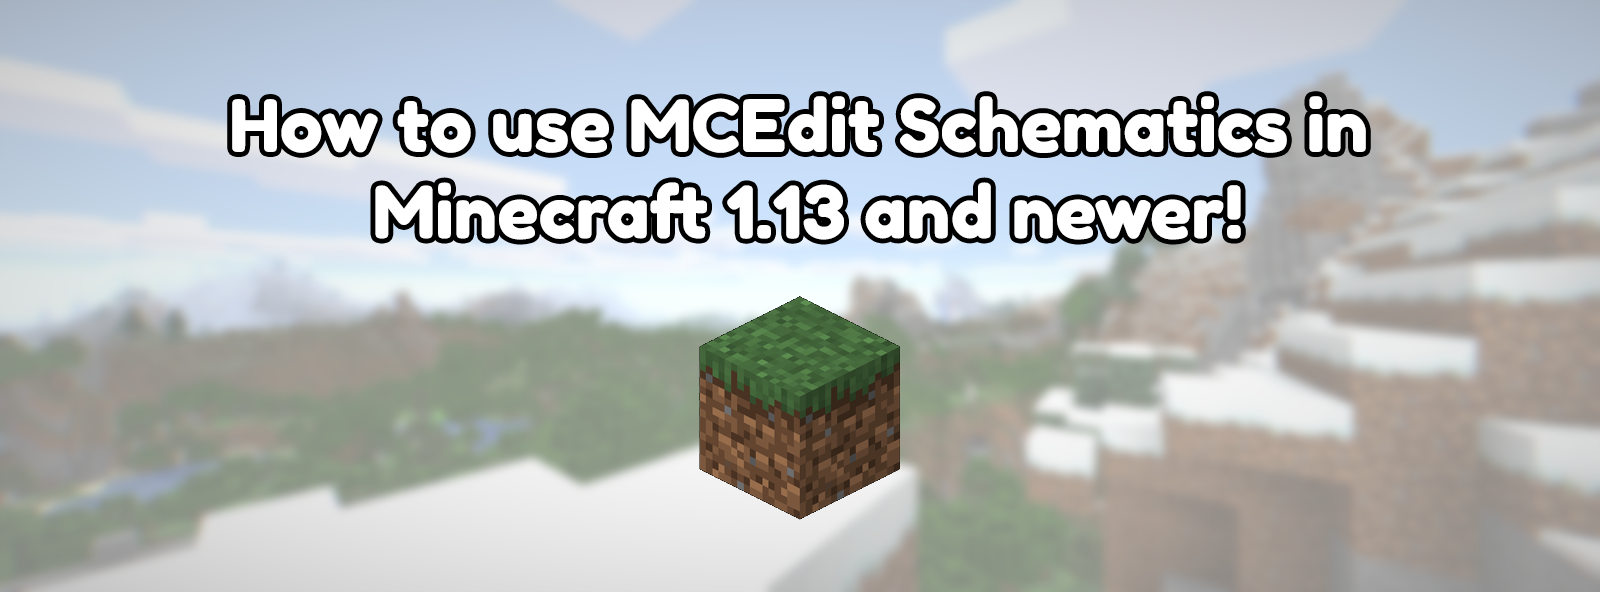 How to use MCEdit Schematics in Minecraft 1.13, 1.14, 1.15, 1.16, and newer!